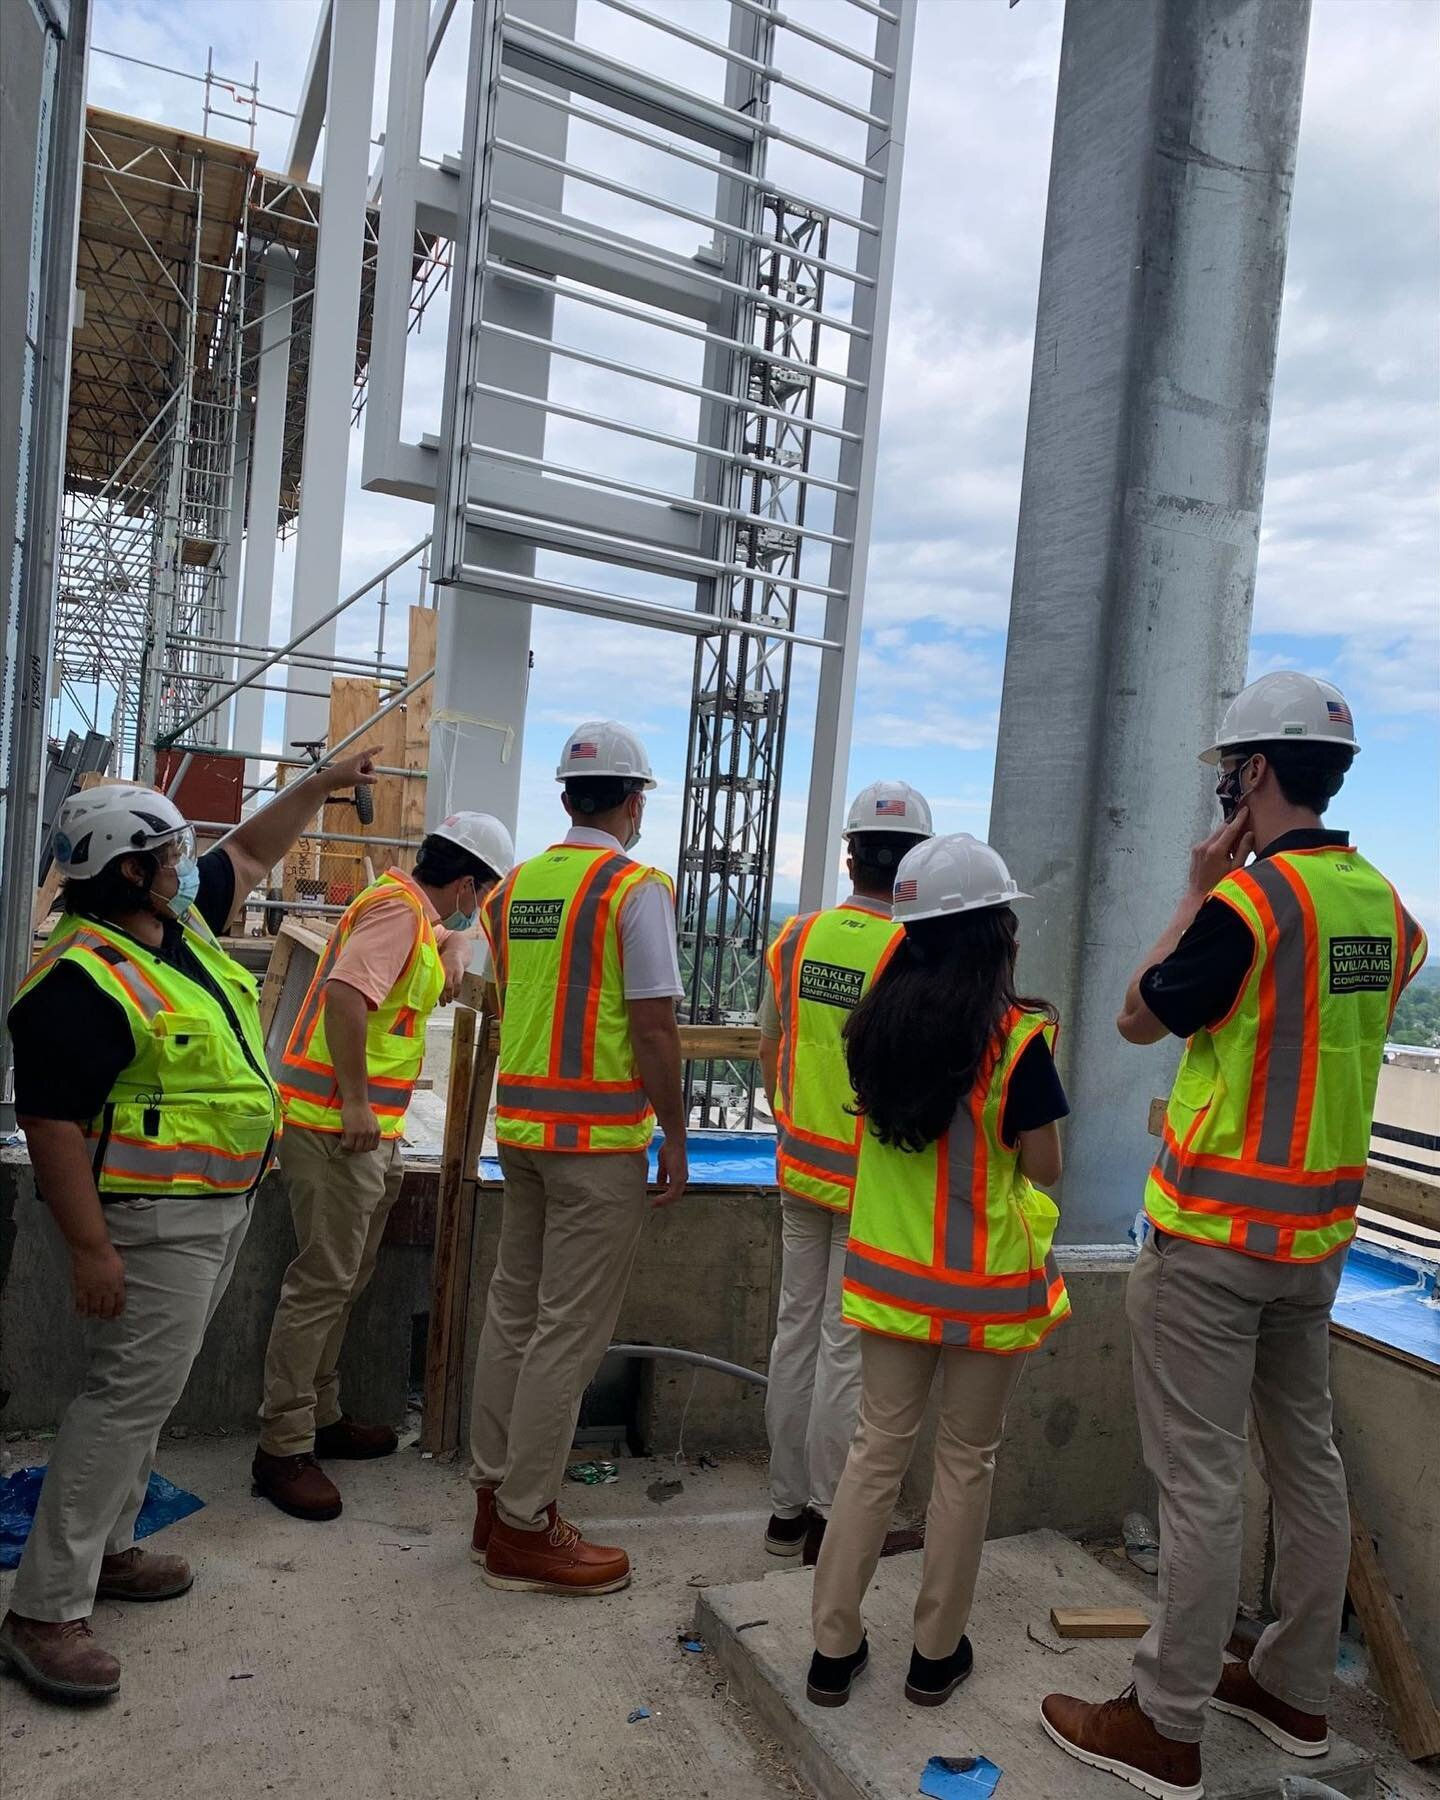 This is how we build the future. #SummerInterns2021 #Construction